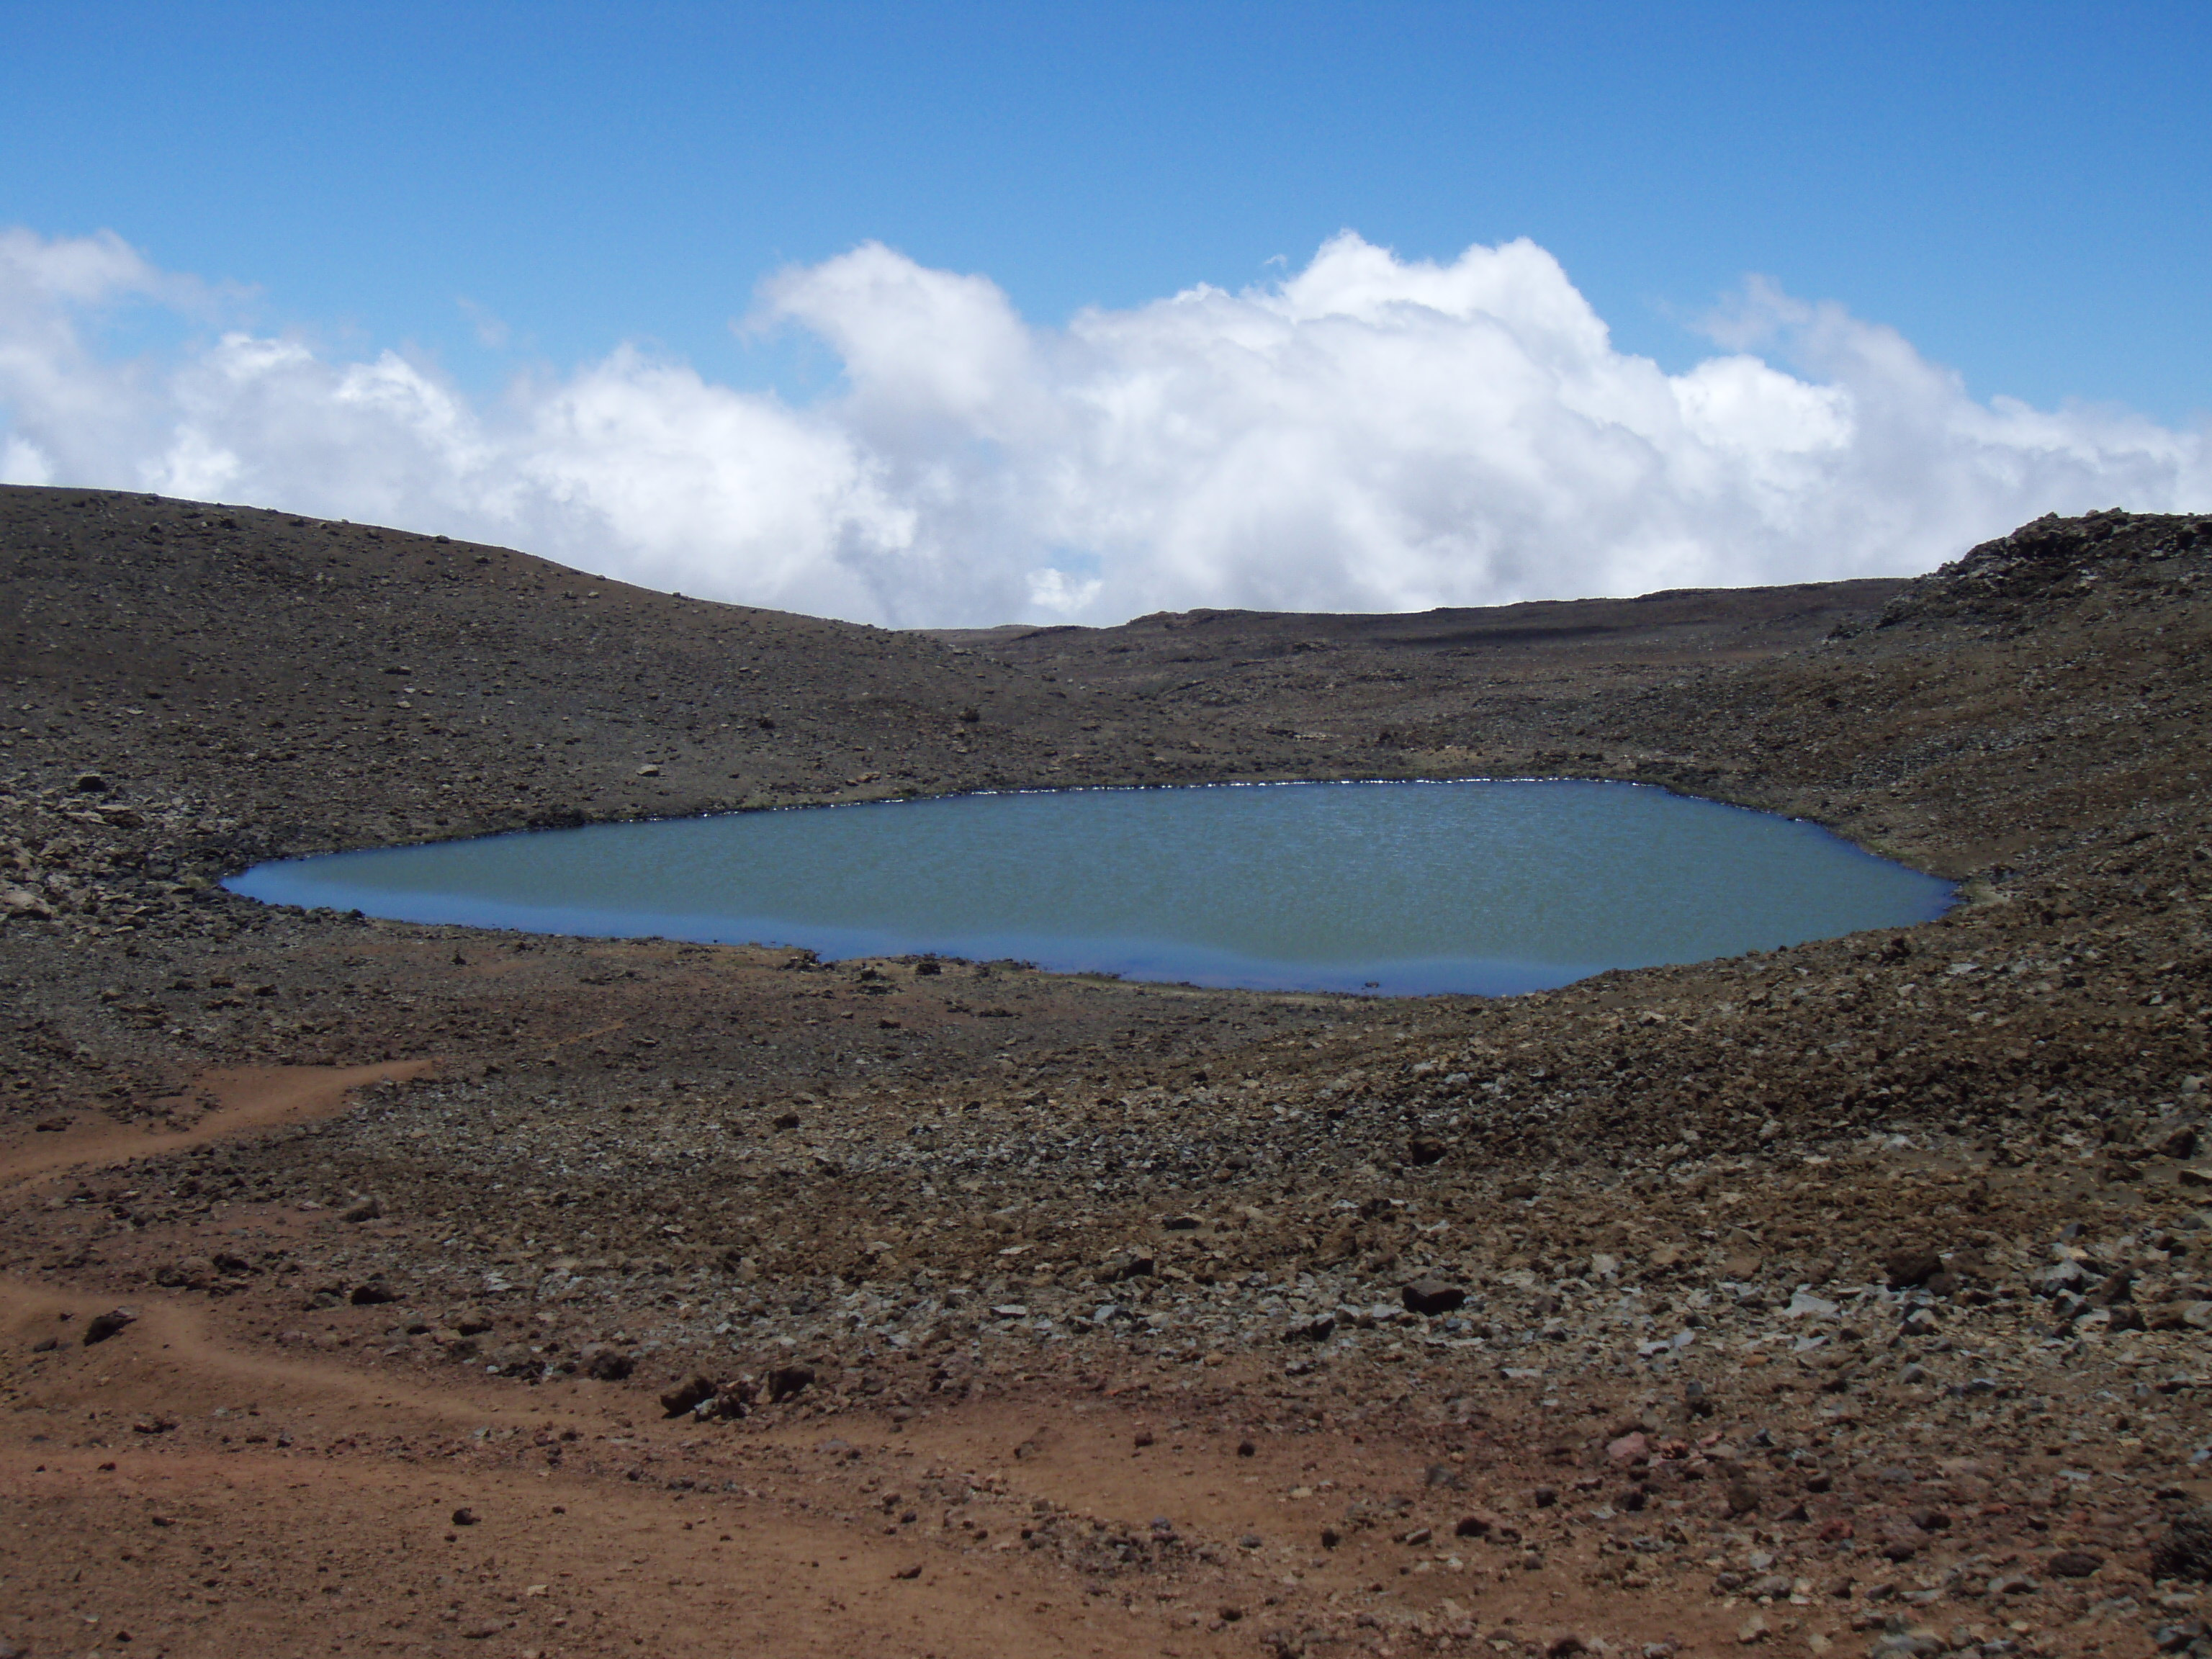 """Lake Wai'au--the Seventh Highest Lake in the US--Whose Name Means """"Swirling Water"""", Perches Near the Summit of Mauna Kea On The Big Island of Hawaii: Photo by Donnie MacGowan"""